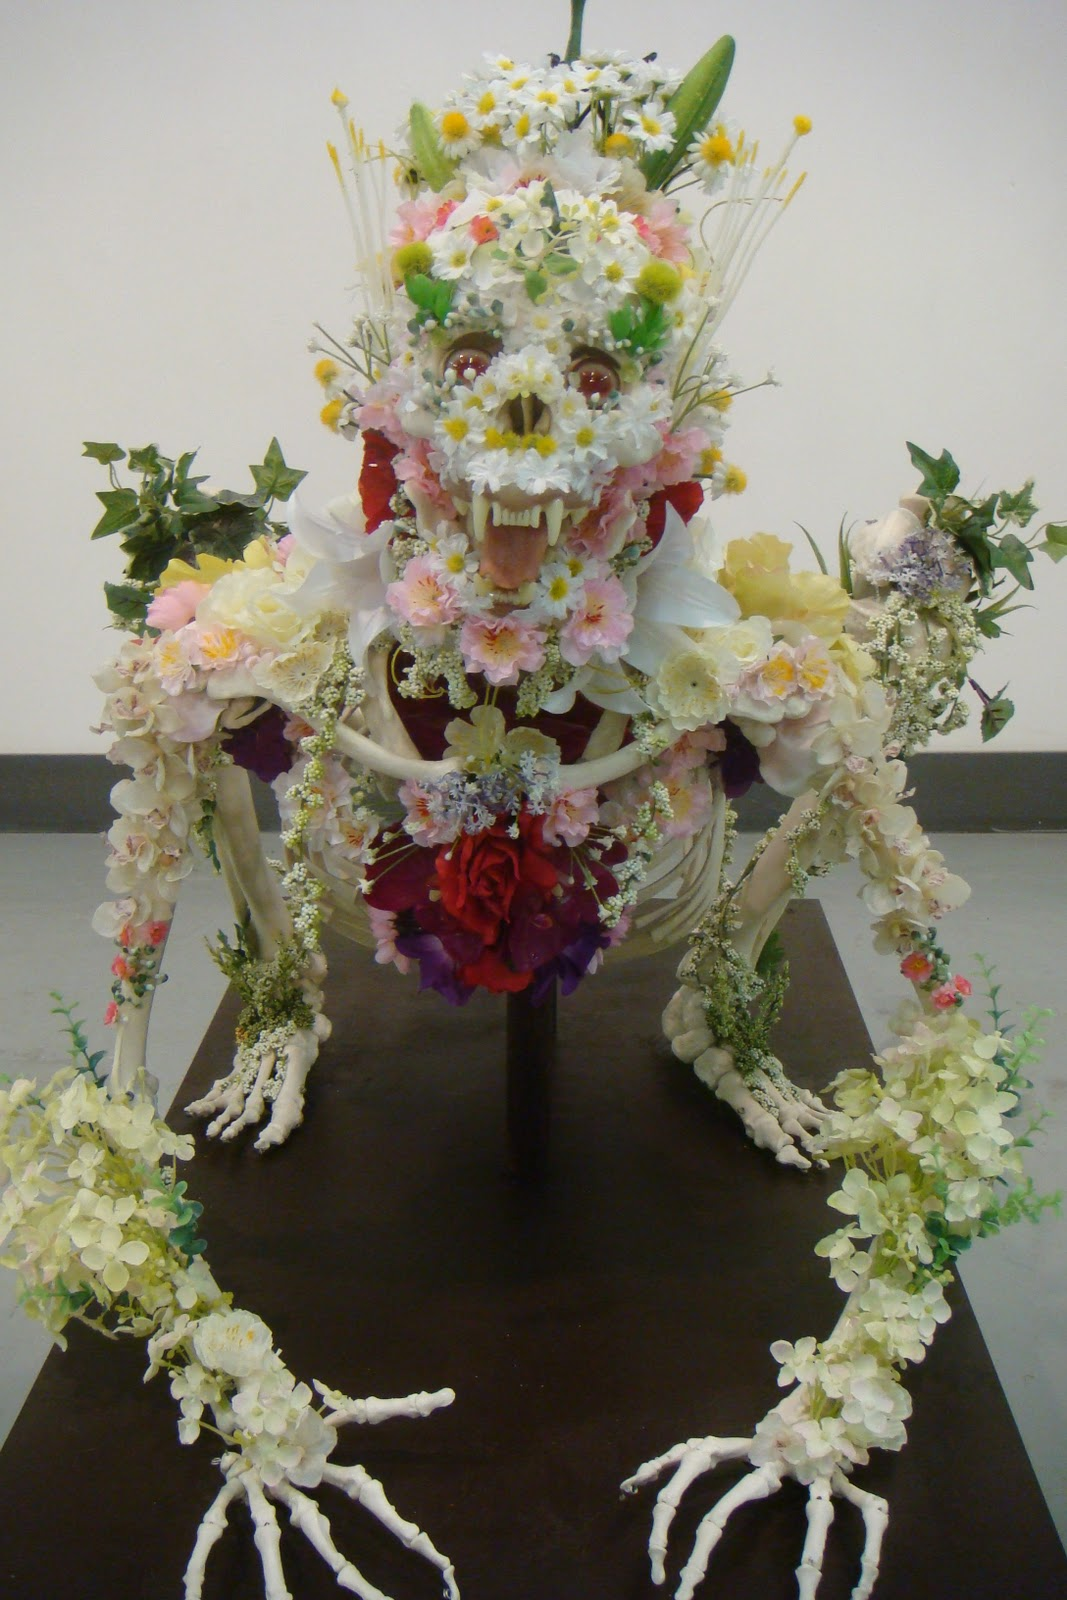 Animal Skeleton Sculptures Decorated With Flowers